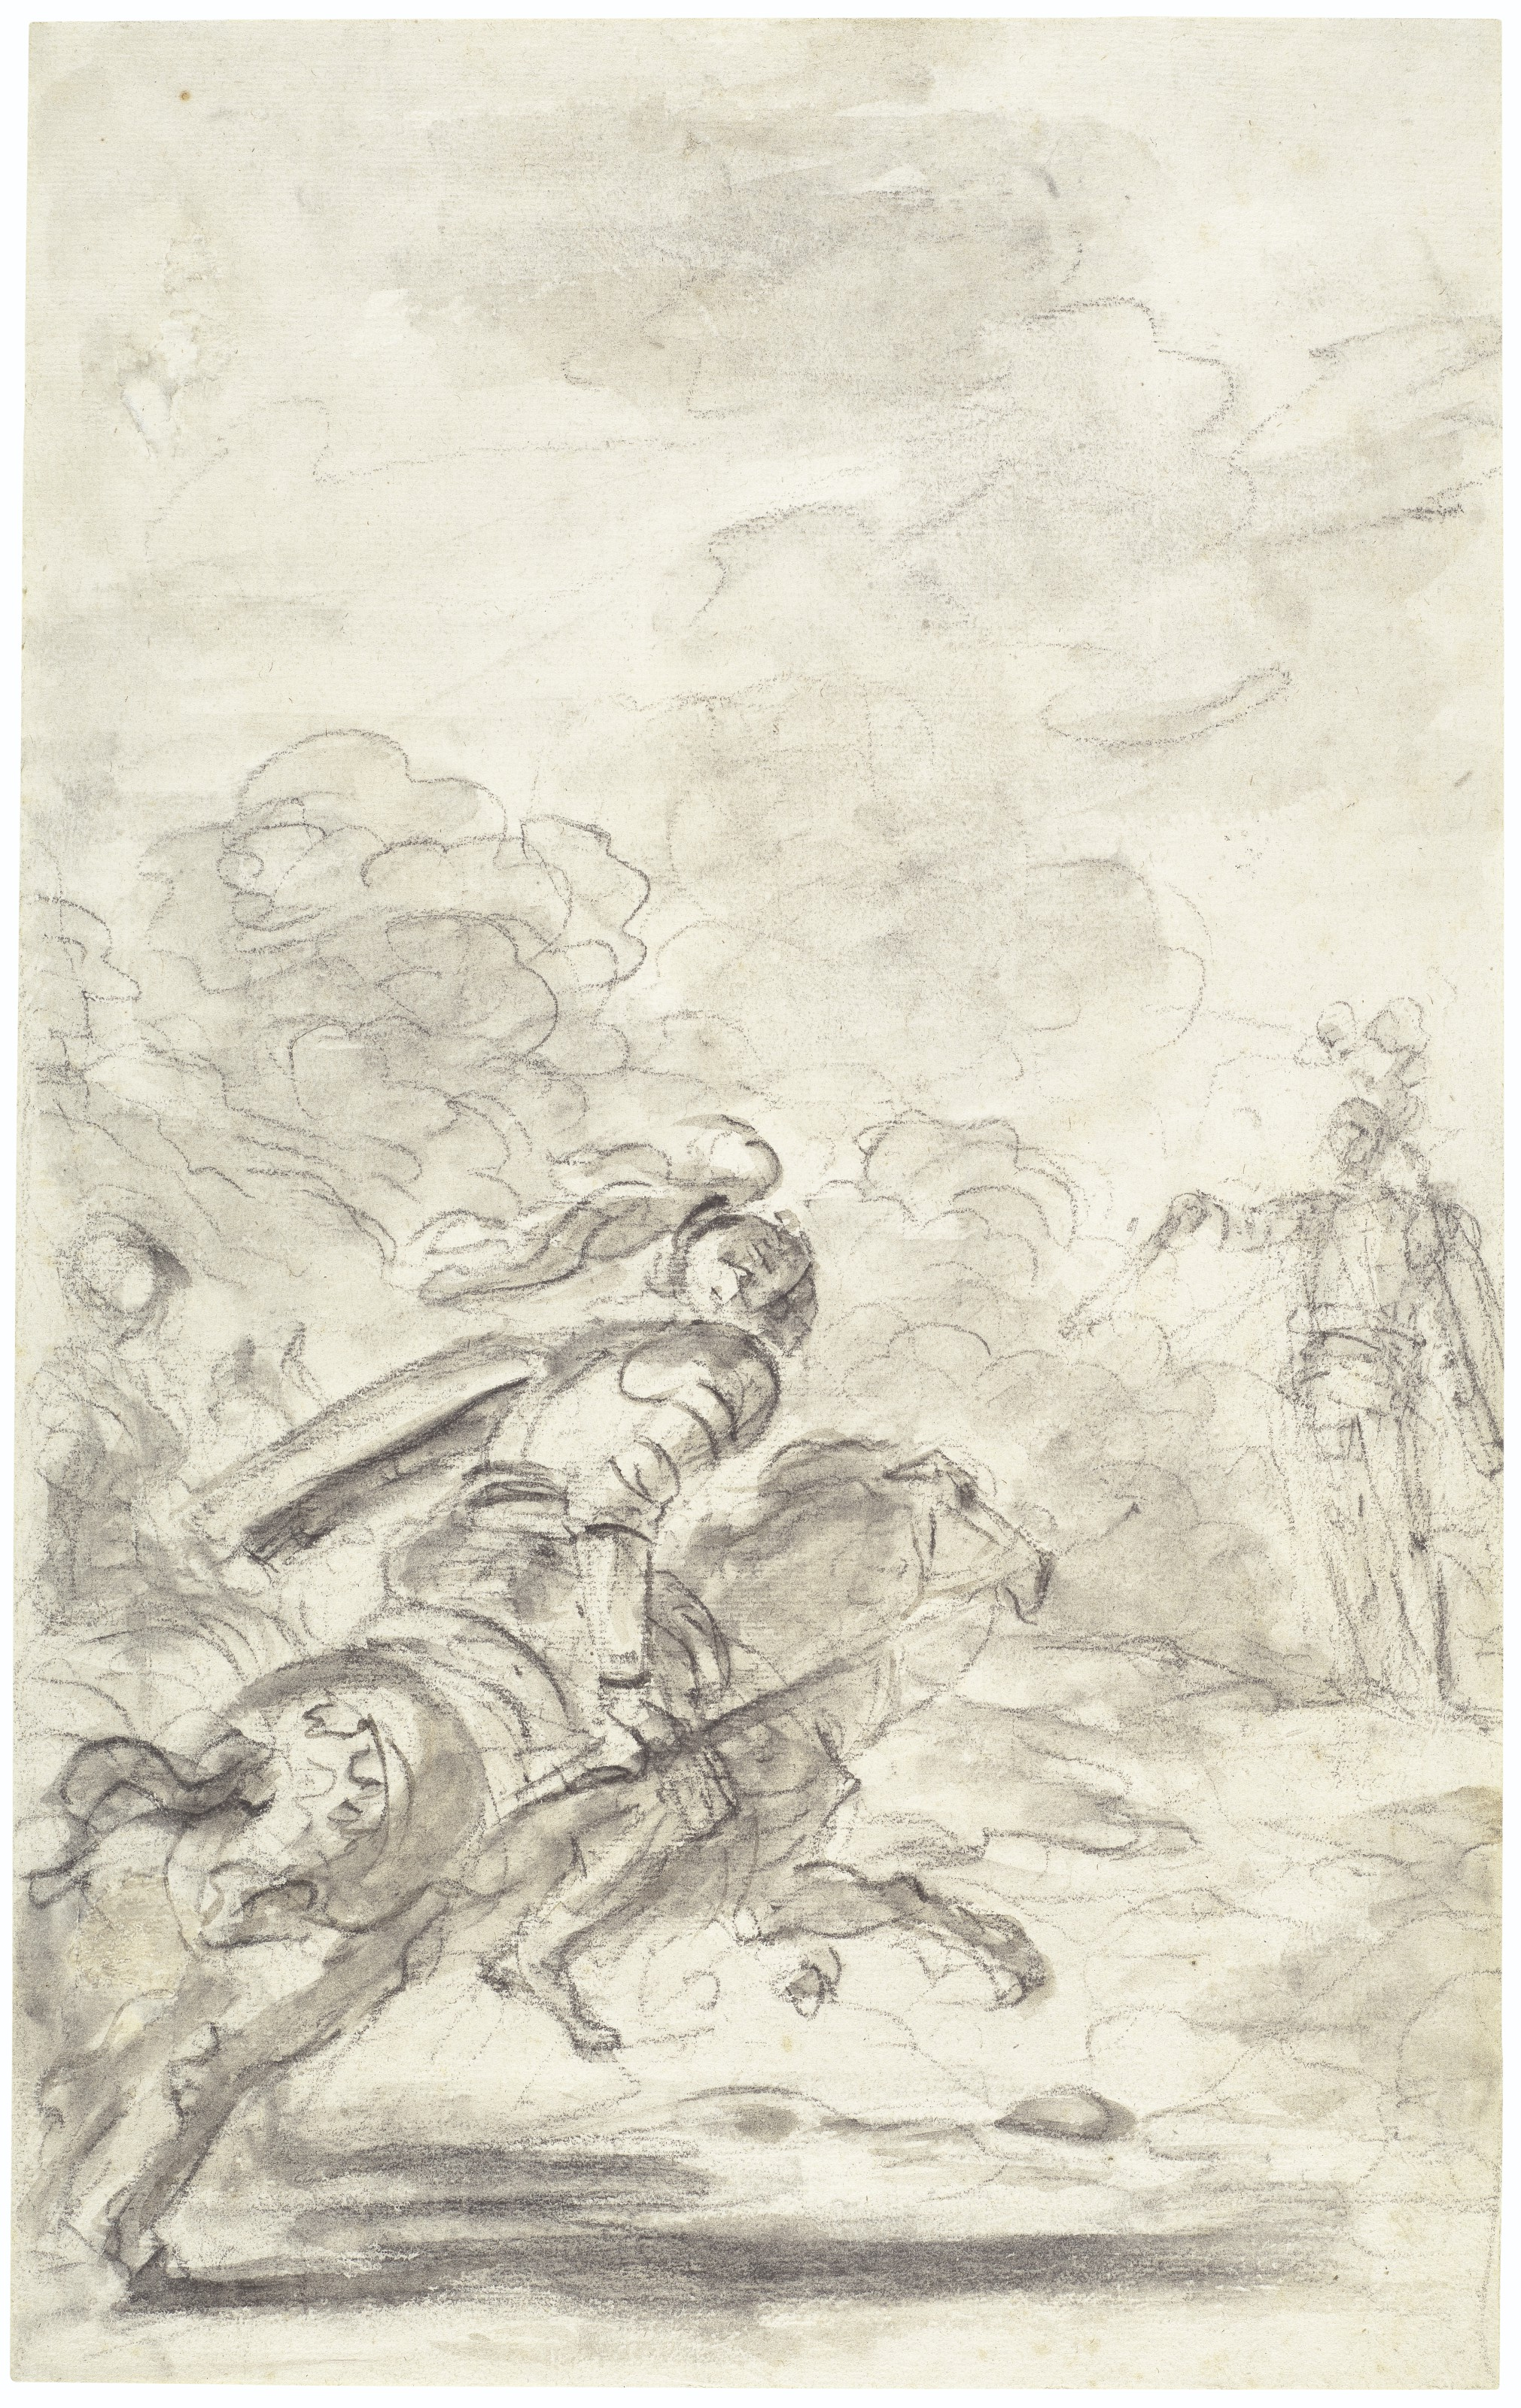 Jean-Honoré Fragonard (1732-1806), Rinaldo ordering Sacripante to give back his horse (Orlando furioso, II, 3-6). Black chalk, brown and grey wash. 15⅛ x 9½ in (38.3 x 24 cm). Estimate $20,000-30,000. Offered in Old Master and British Drawings, 14-26 January 2021, Online